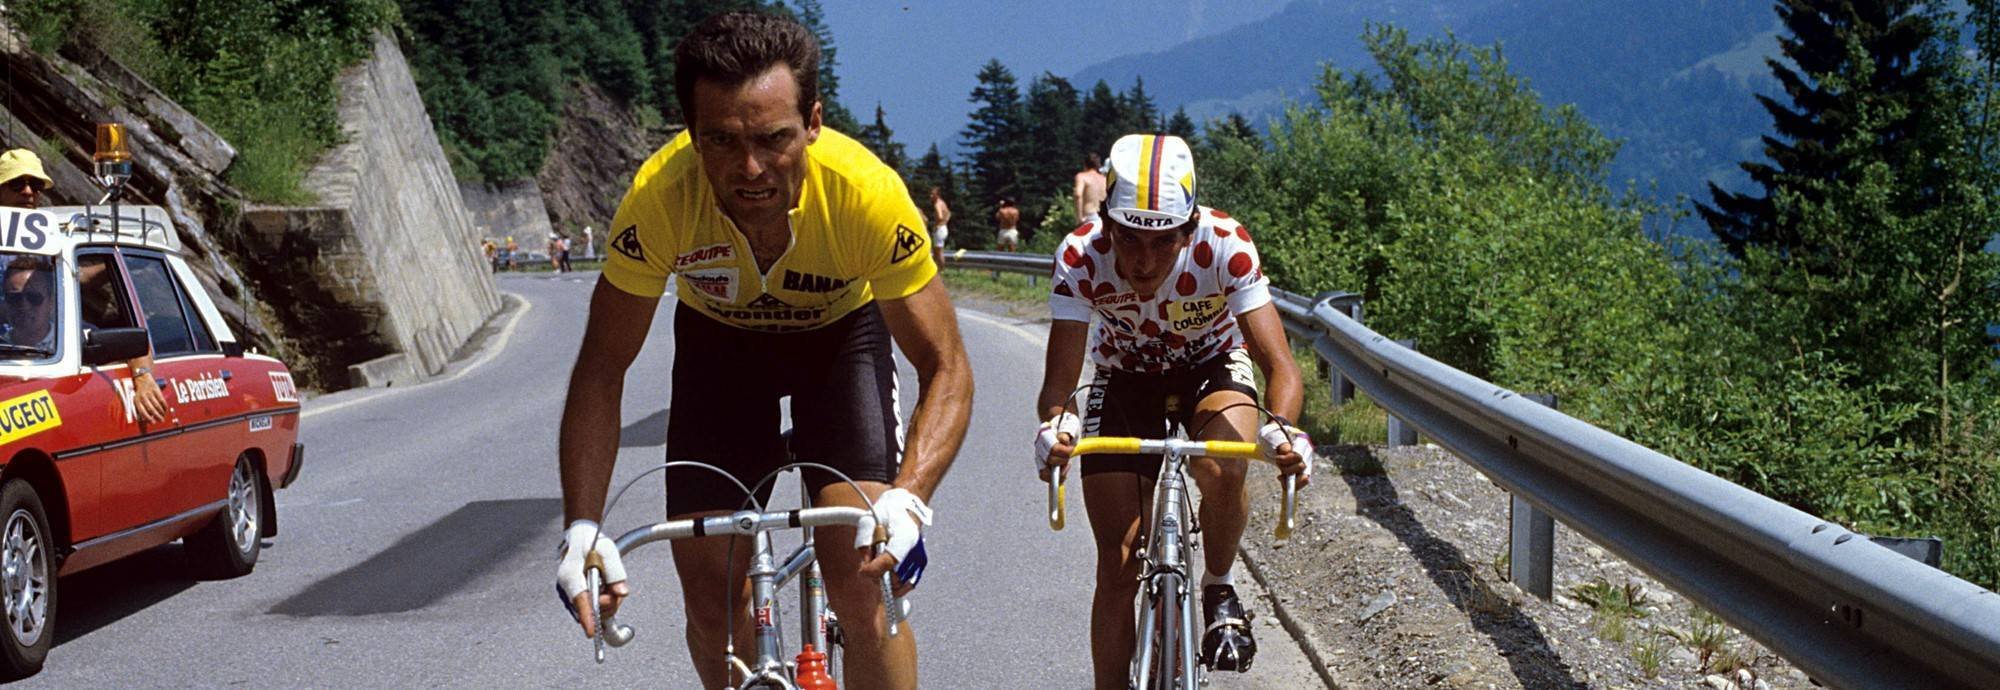 Header: The history of the Tour de France